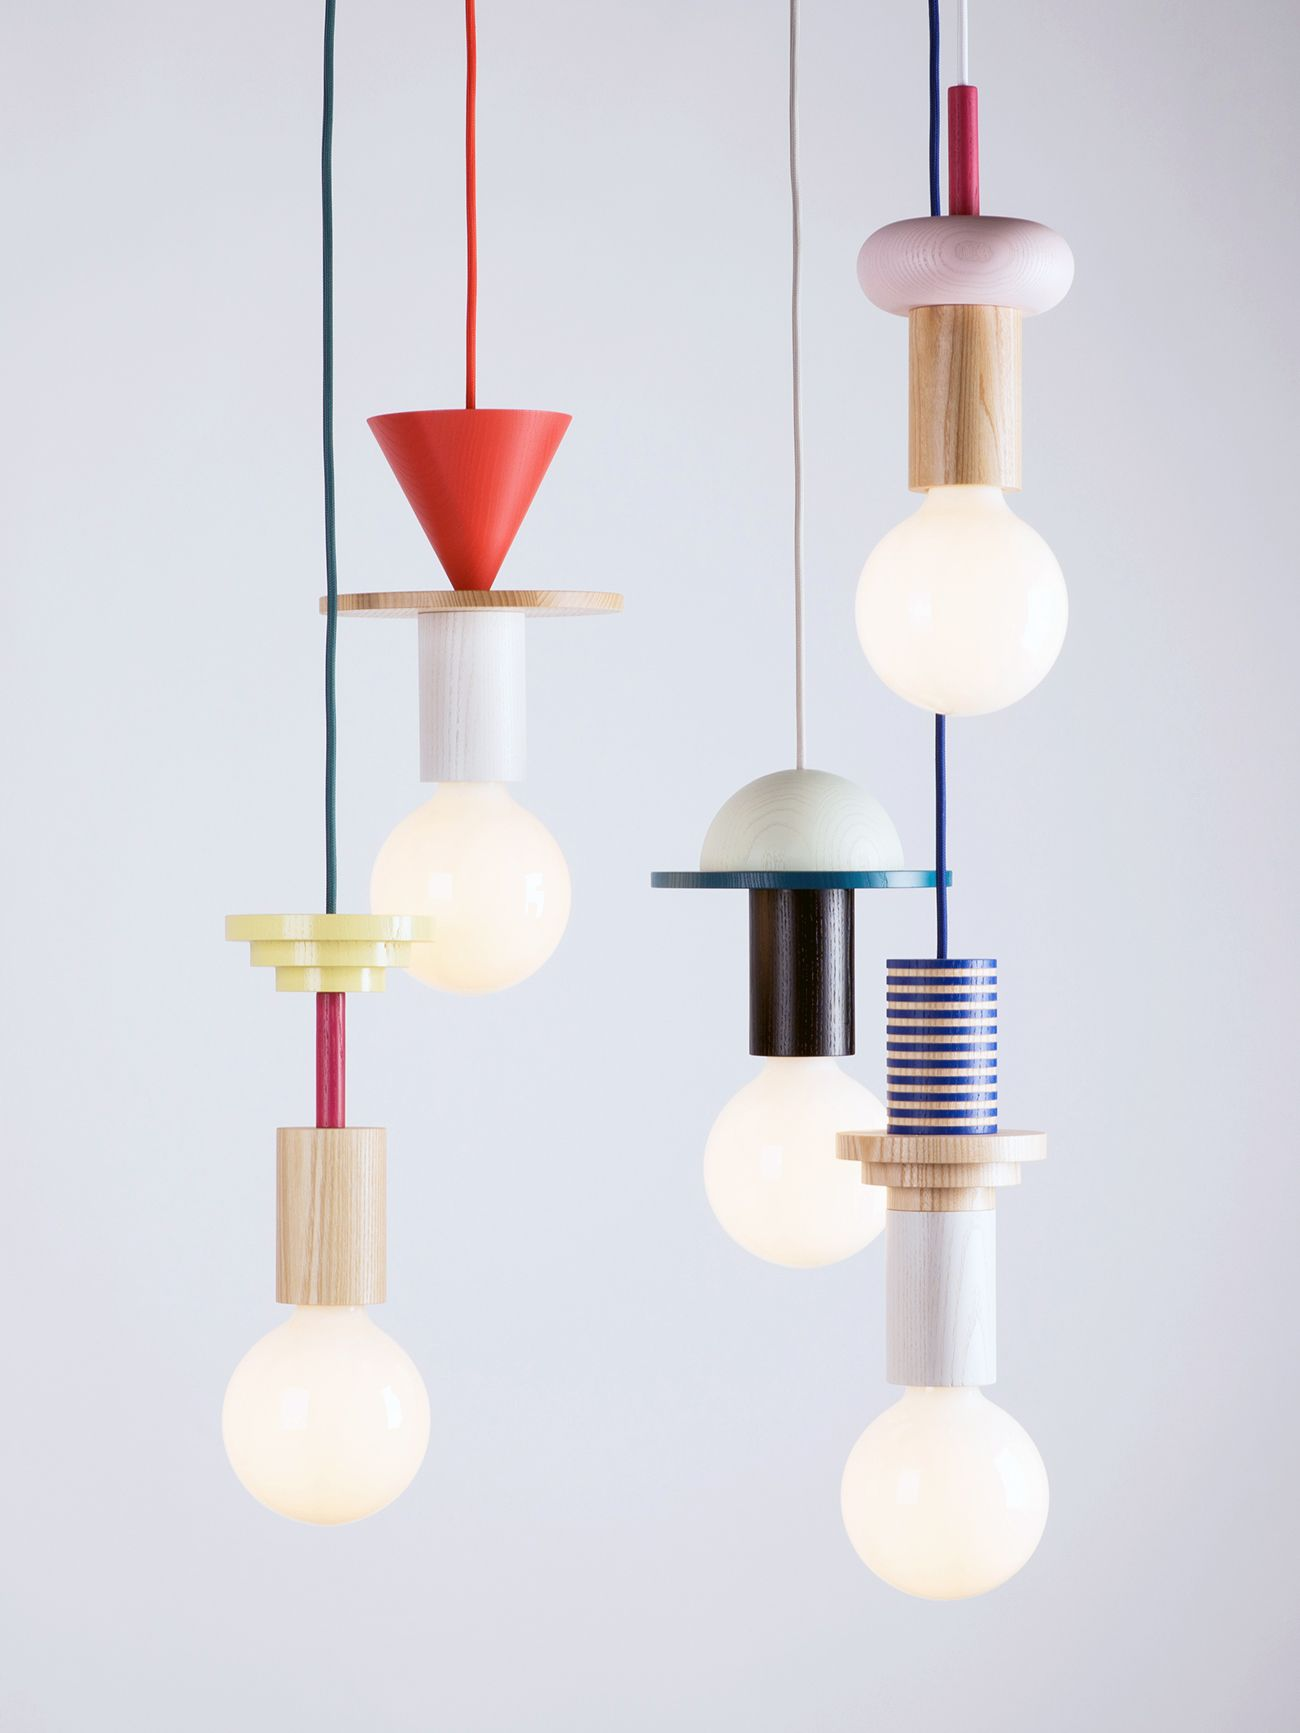 Mix-and-match pendant lights / Schneid & Mix-and-match pendant lights / Schneid | All of the Lights ... azcodes.com